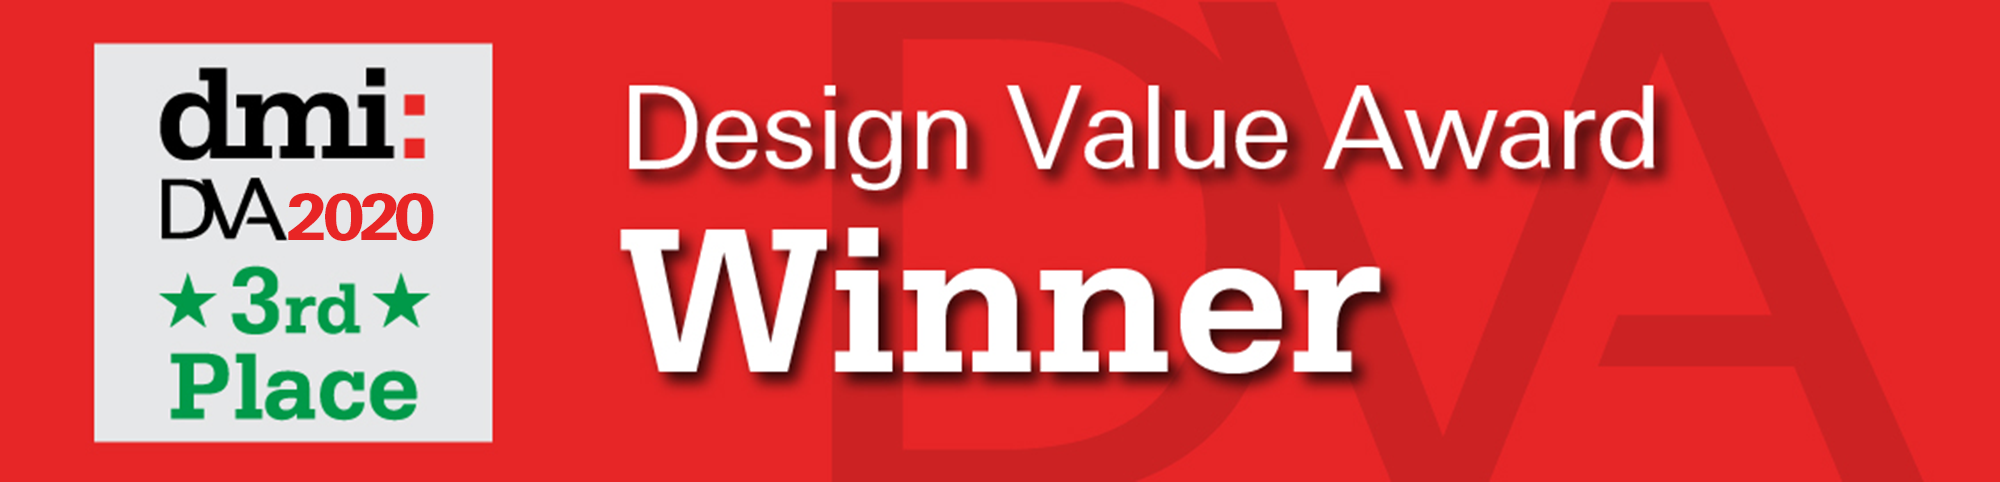 dmi:Design Value Award Winner